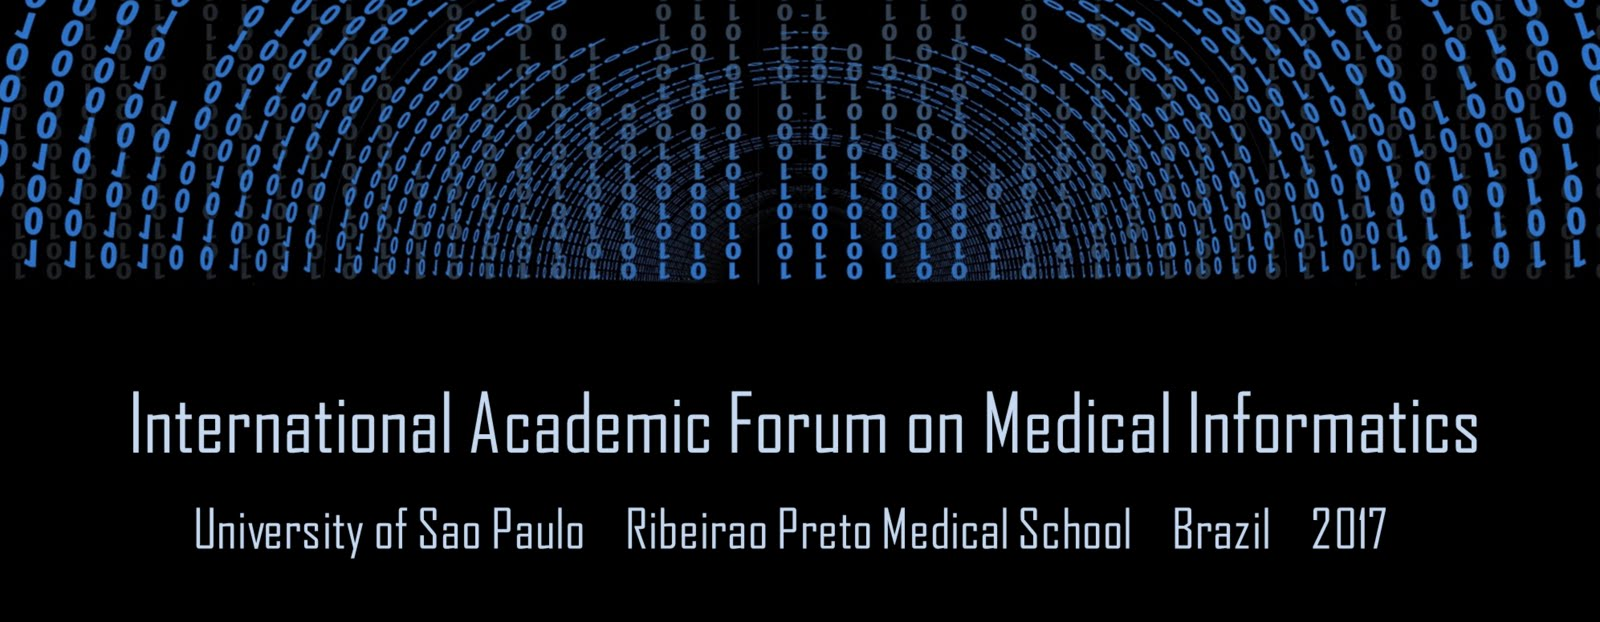 International Academic Forum on Medical Informatics